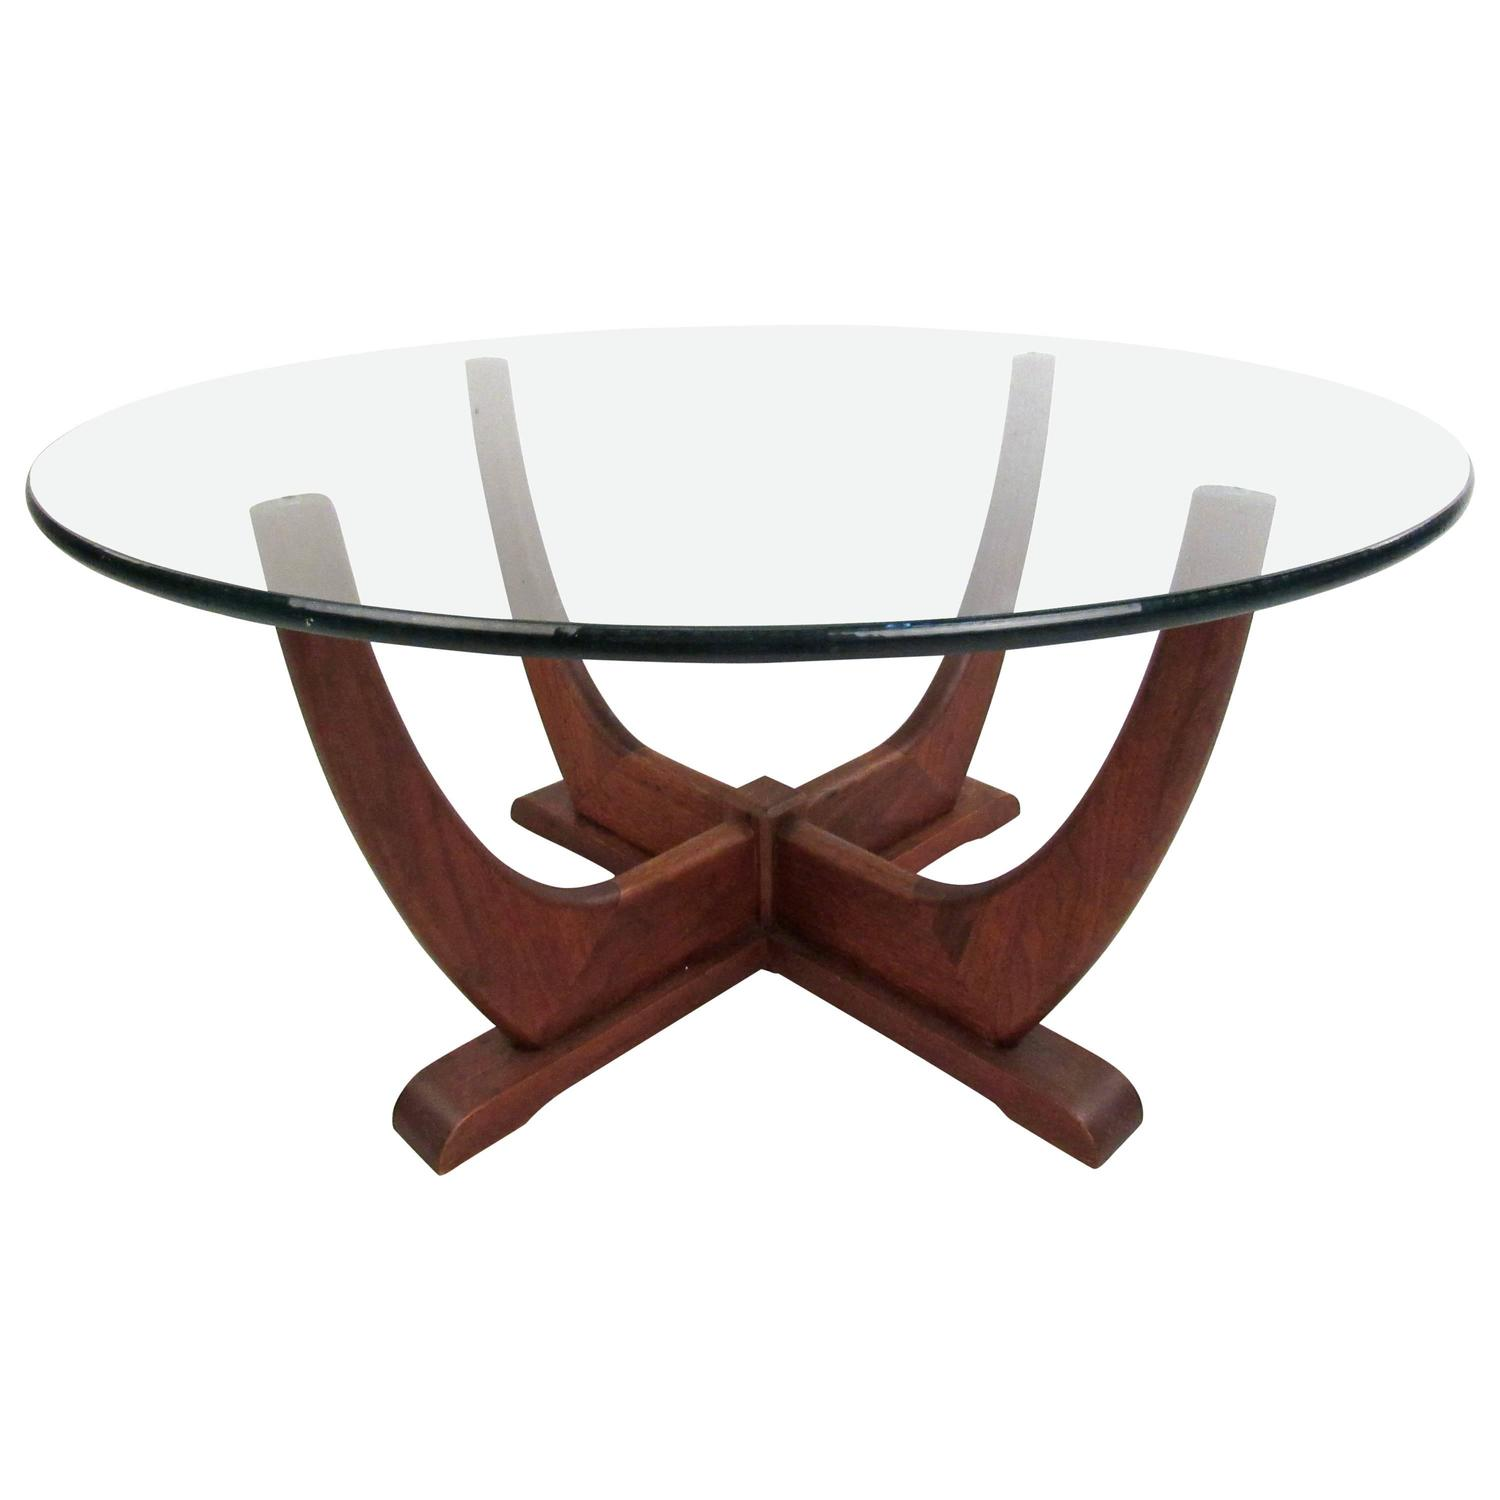 Neptune Cocktail Table Mid-Century Adrian Pearsall Style Round End Table For Sale at 1stdibs